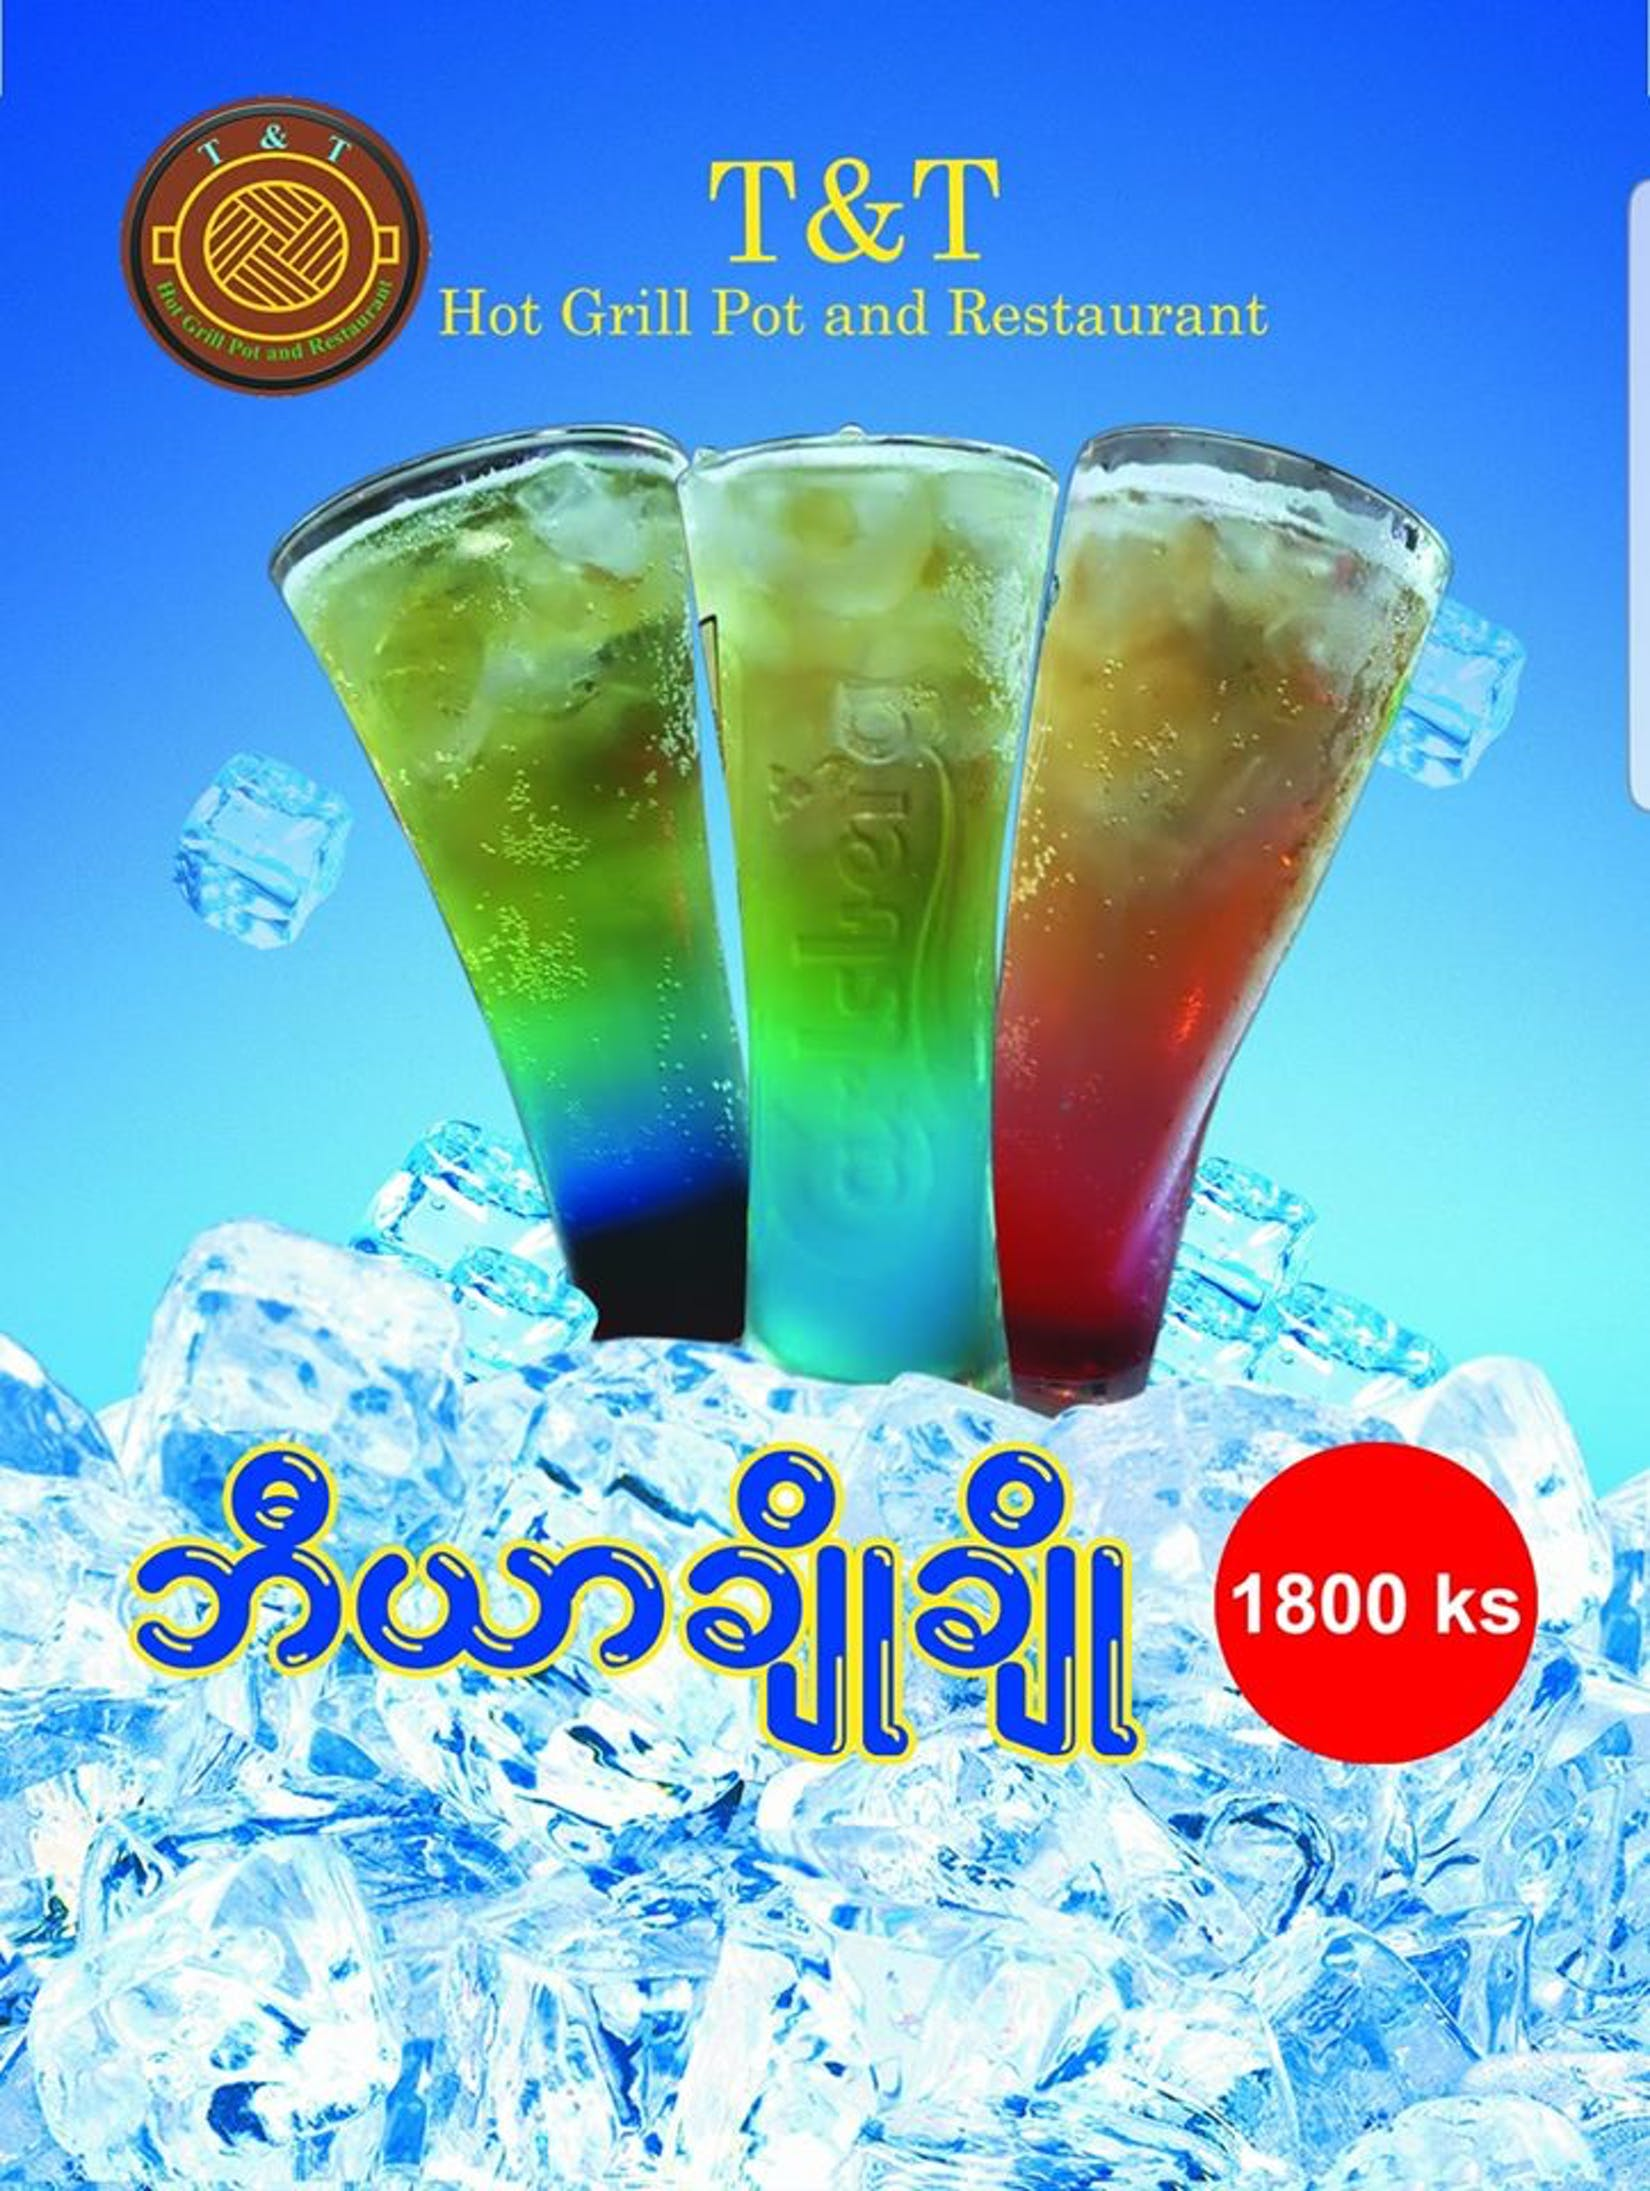 T & T Hot Grill Pot And Restaurant | yathar